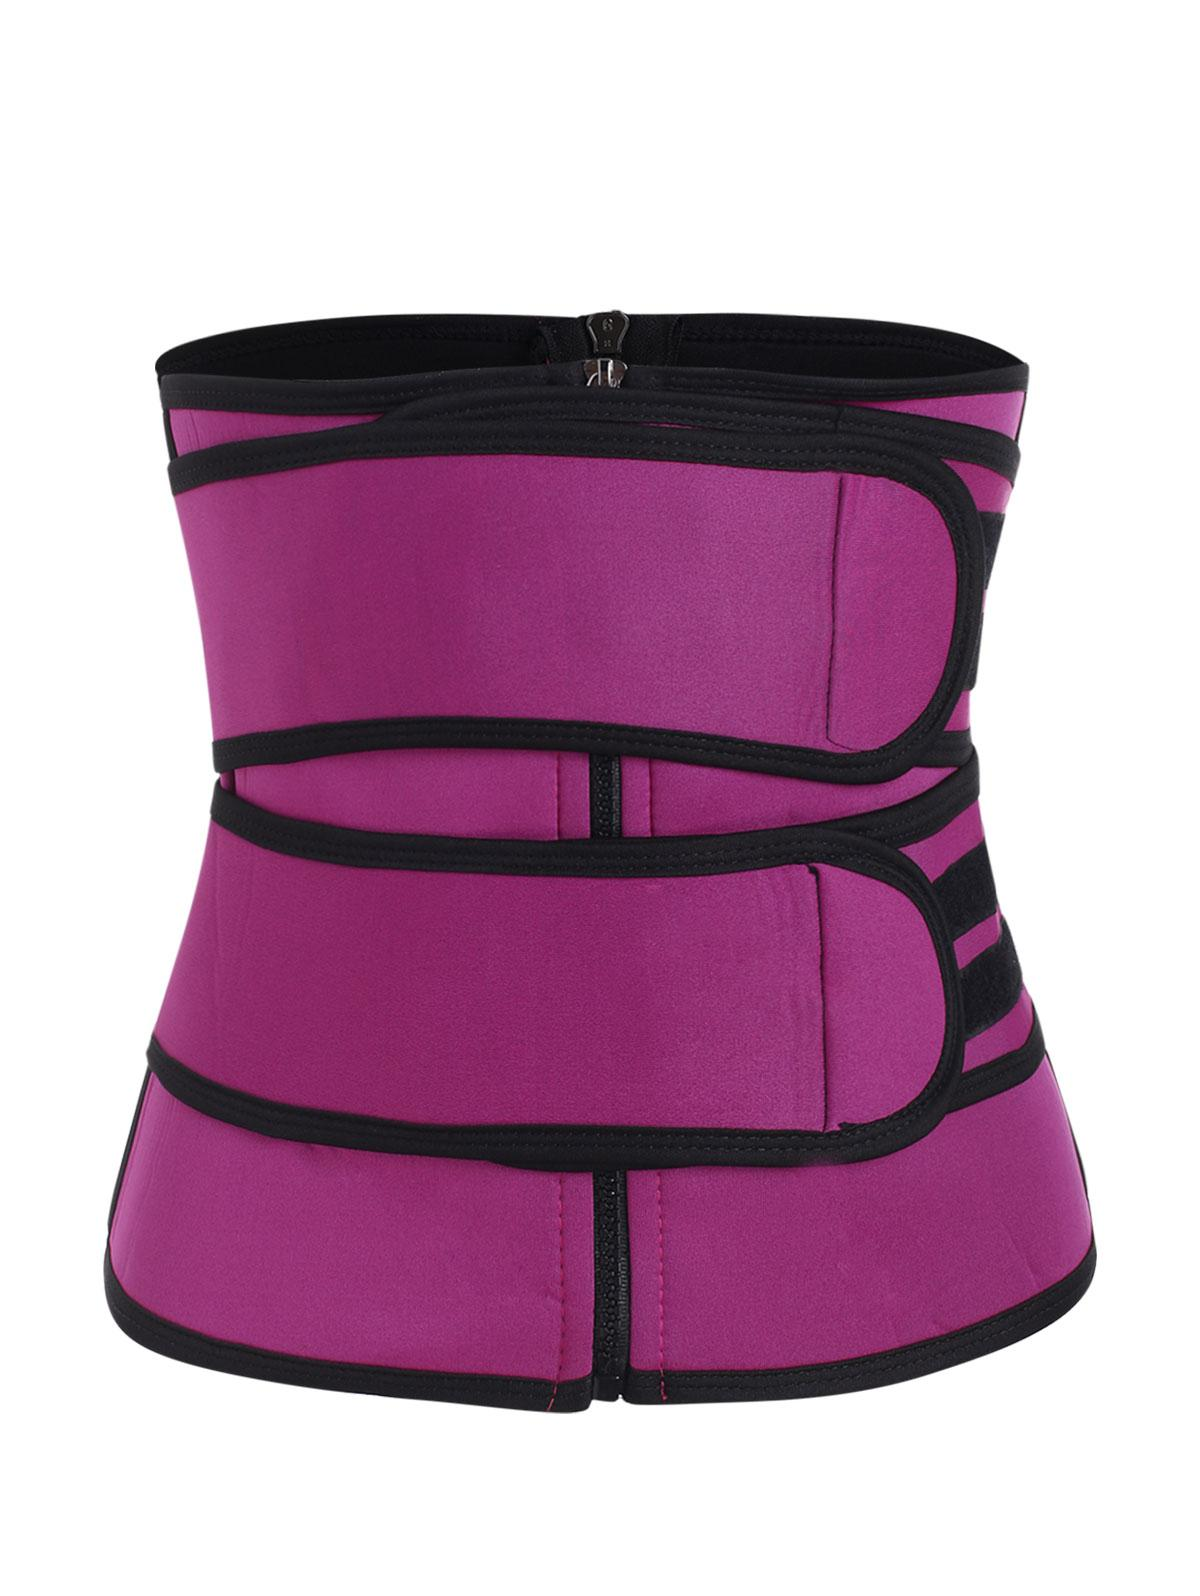 Hook And Loop Zip Up Waist Trainer Corset